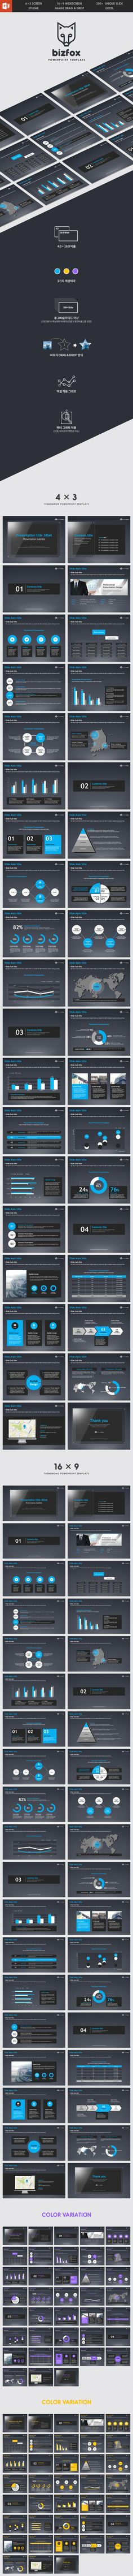 powerpoint template, ppt template, free powerpoint template, 테마몽 파워포인트템플릿, 무료파워포인트템플릿,키노트디자인,프리미엄파워포인트템플릿,테마몽,thememong